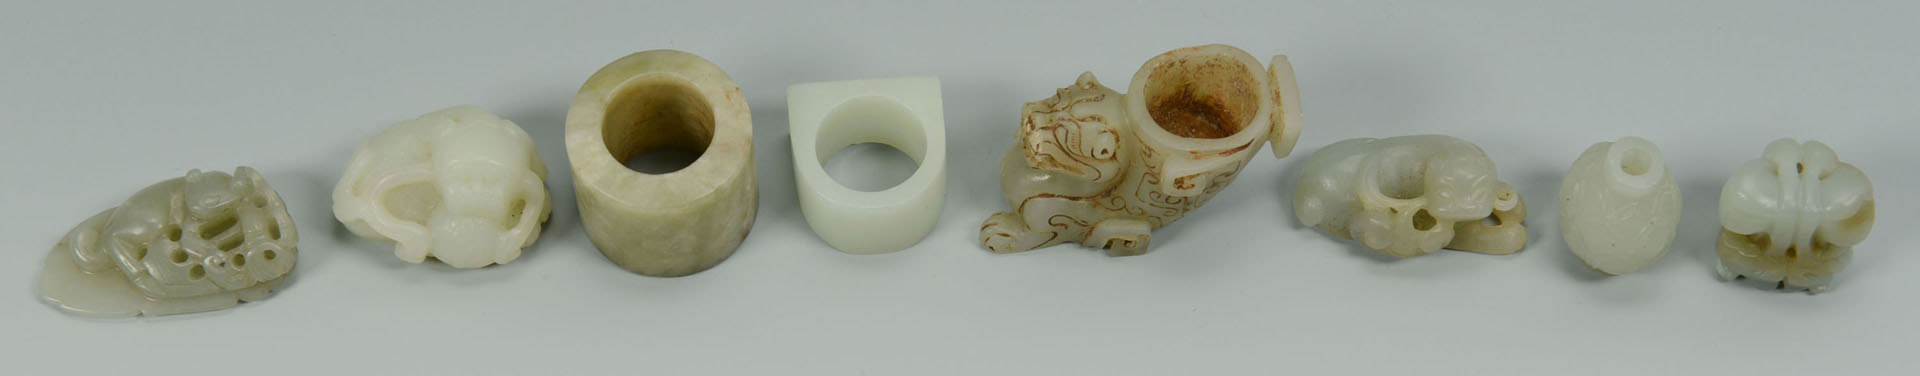 Lot 10: Grouping of 8 Carved Chinese Jade Articles